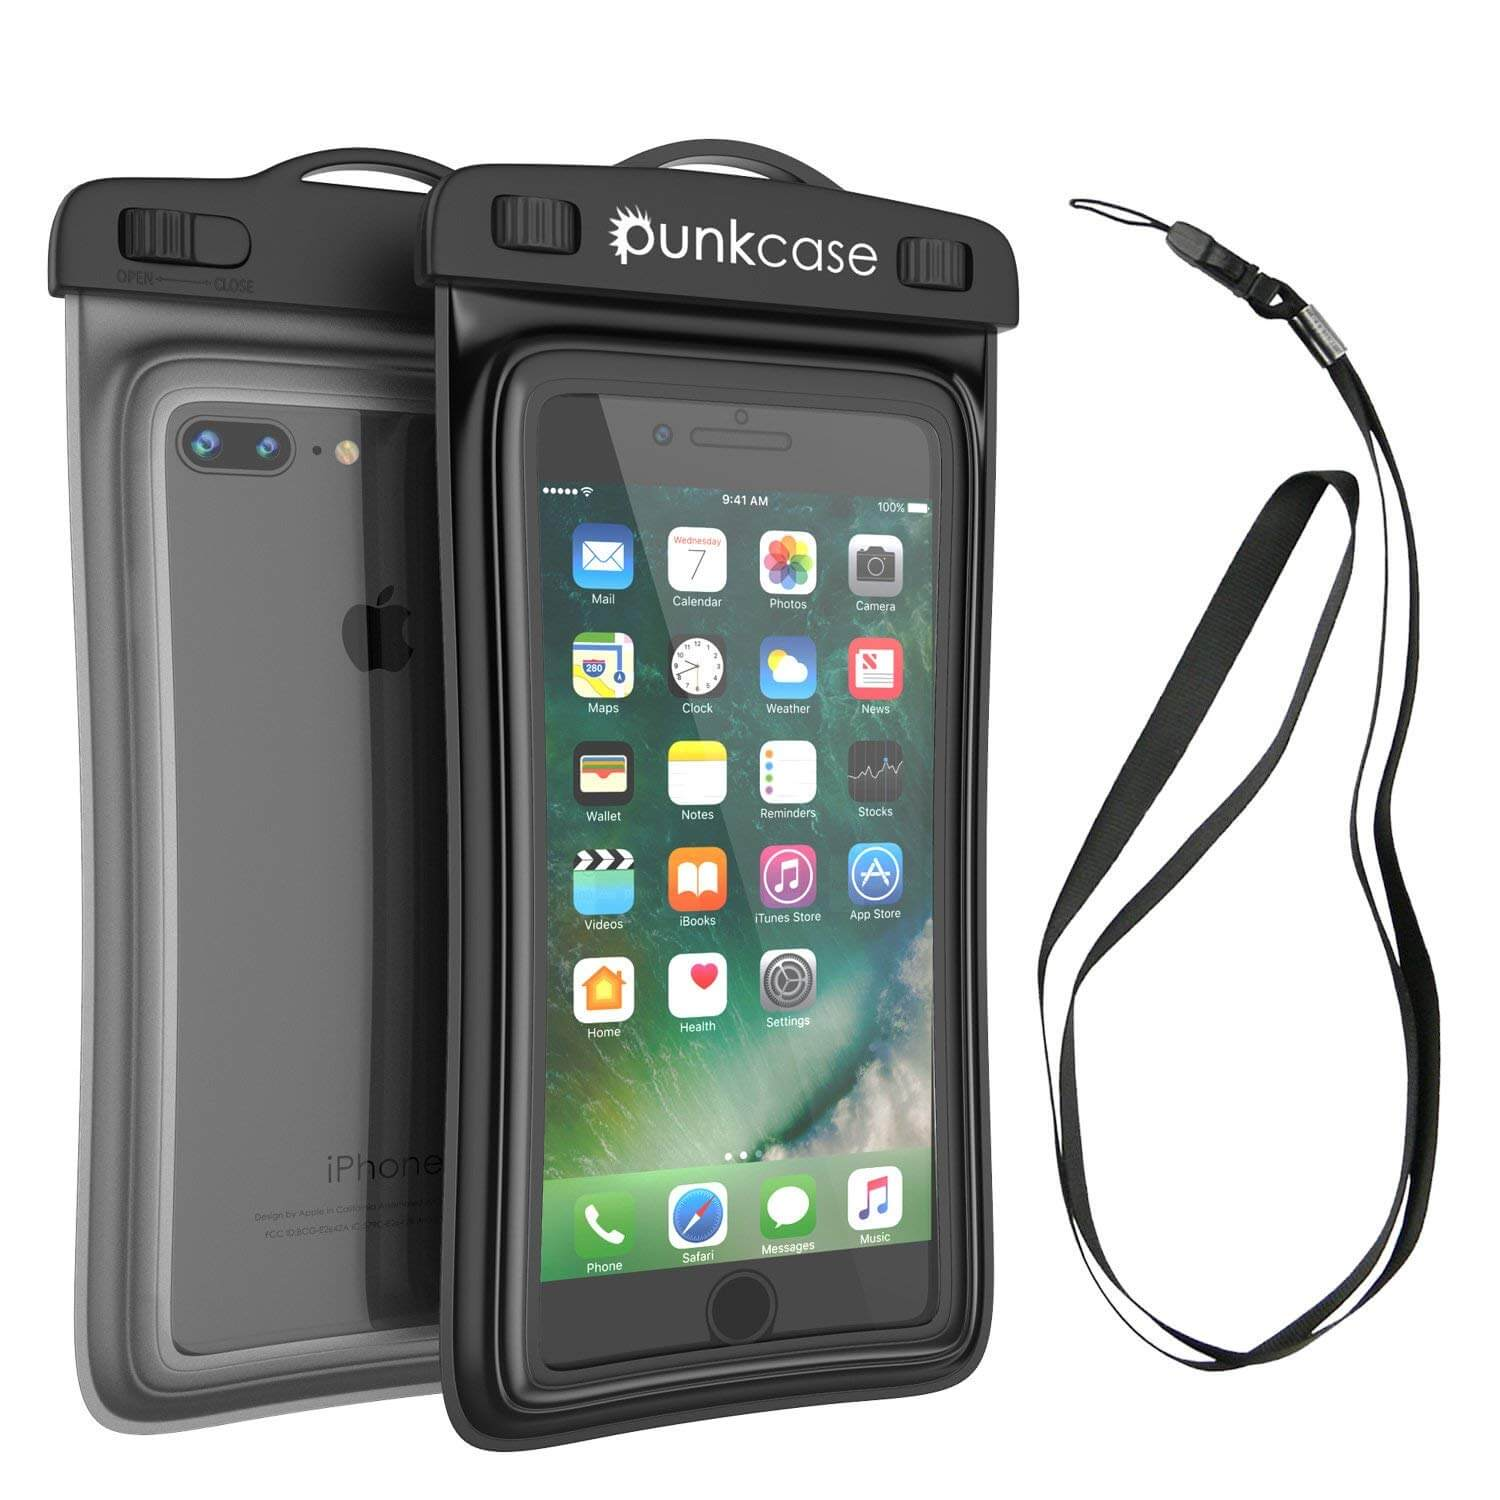 Waterproof Phone Pouch, PunkBag Universal Floating Dry Case Bag for most Cell Phones [Black]